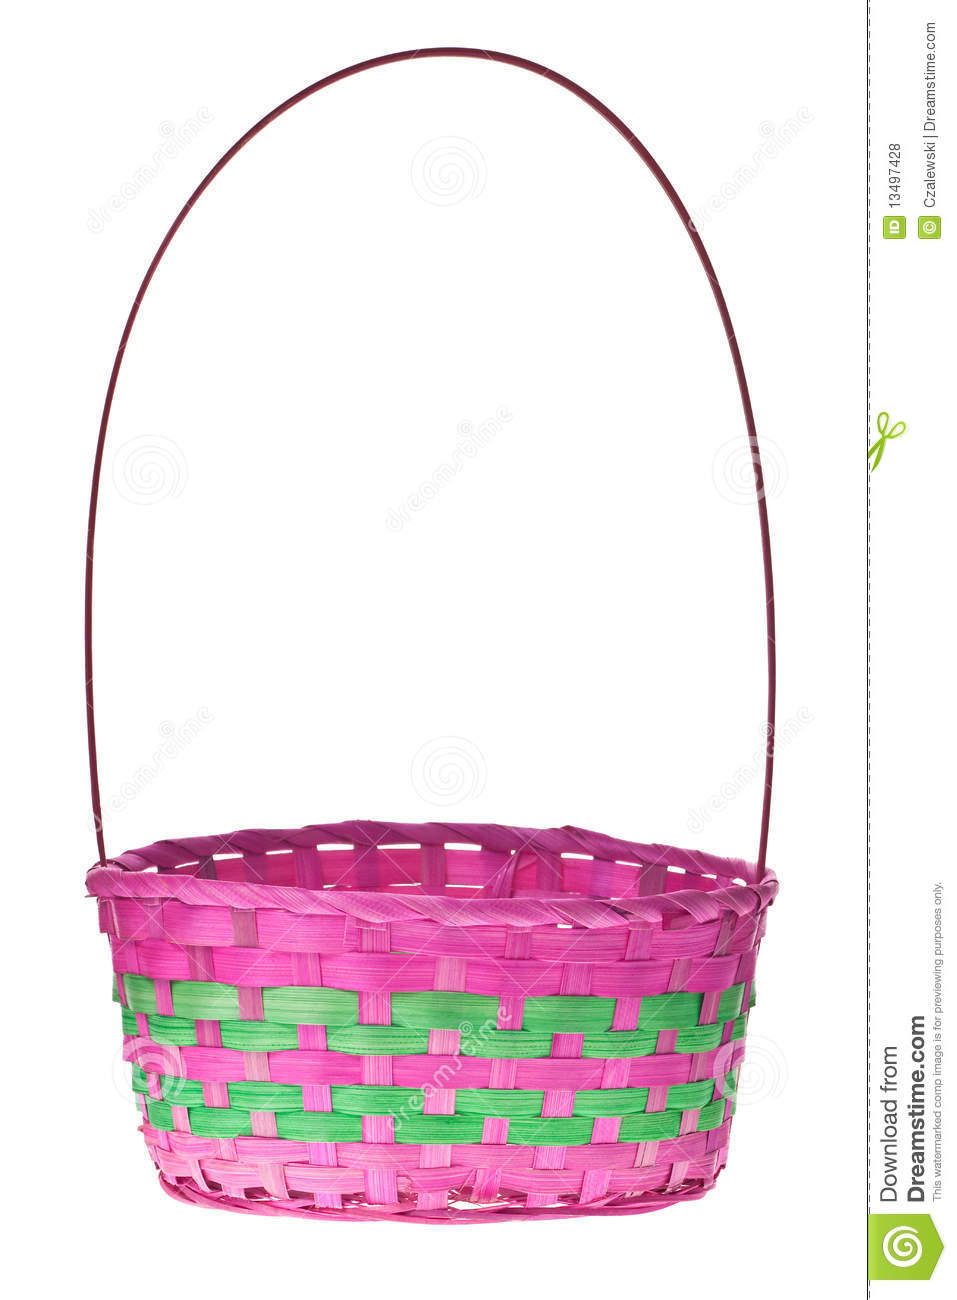 Empty Easter Basket Clipart Easter basket     emptyEmpty Easter Basket Clipart